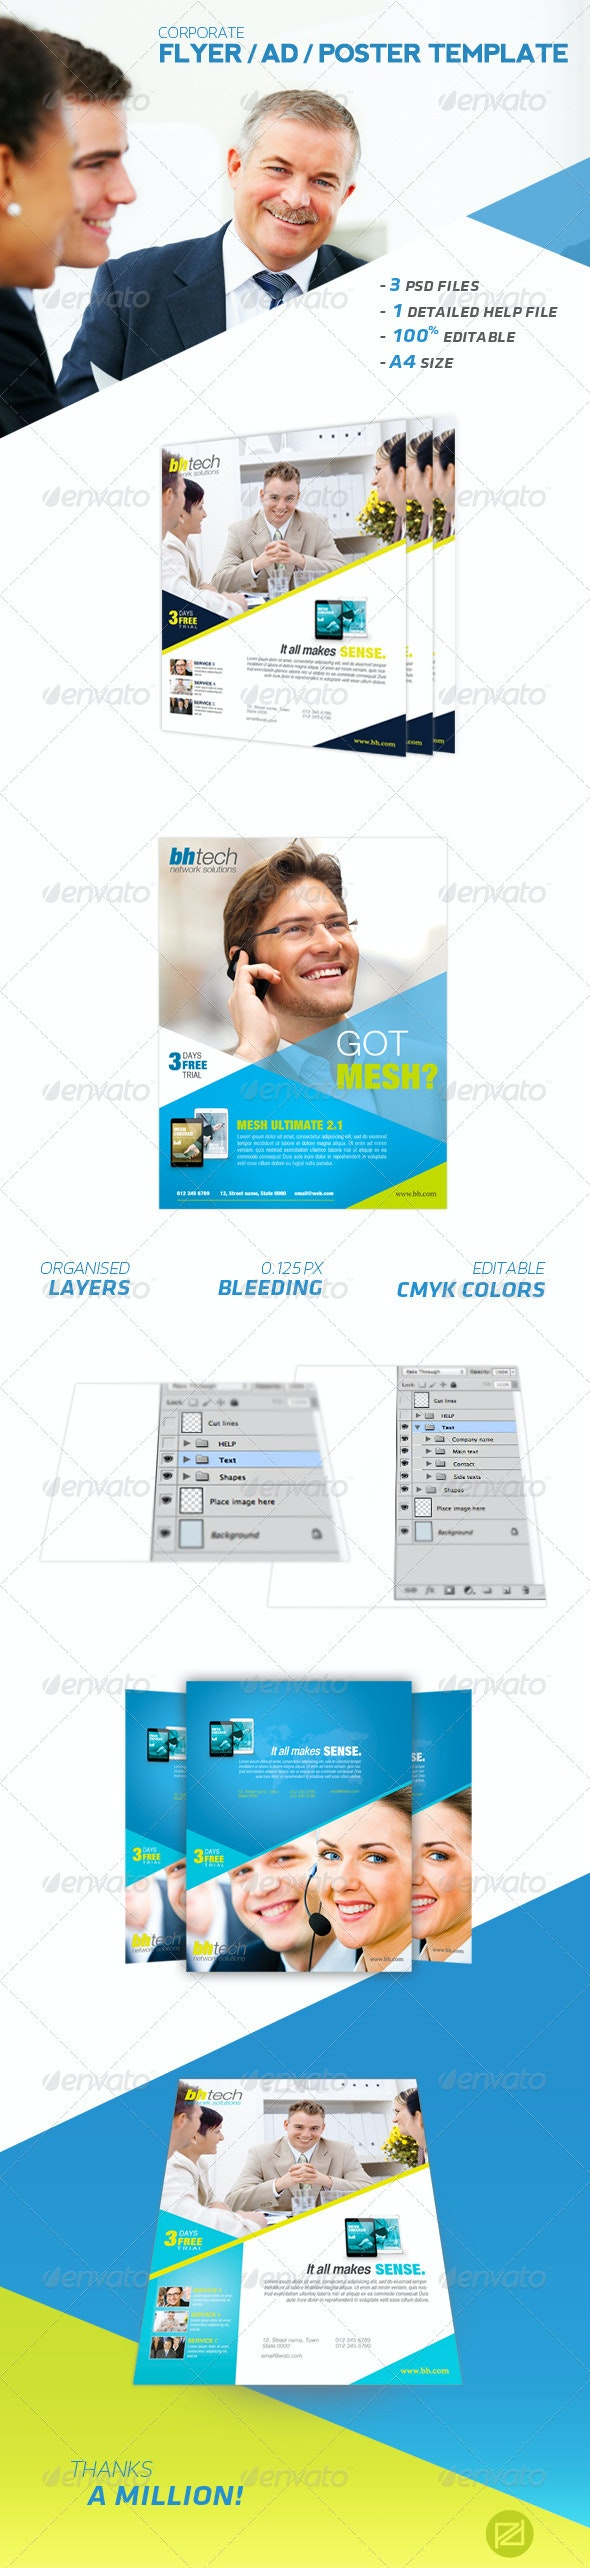 Corporate Flyer / AD / Poster Template - Corporate Flyers